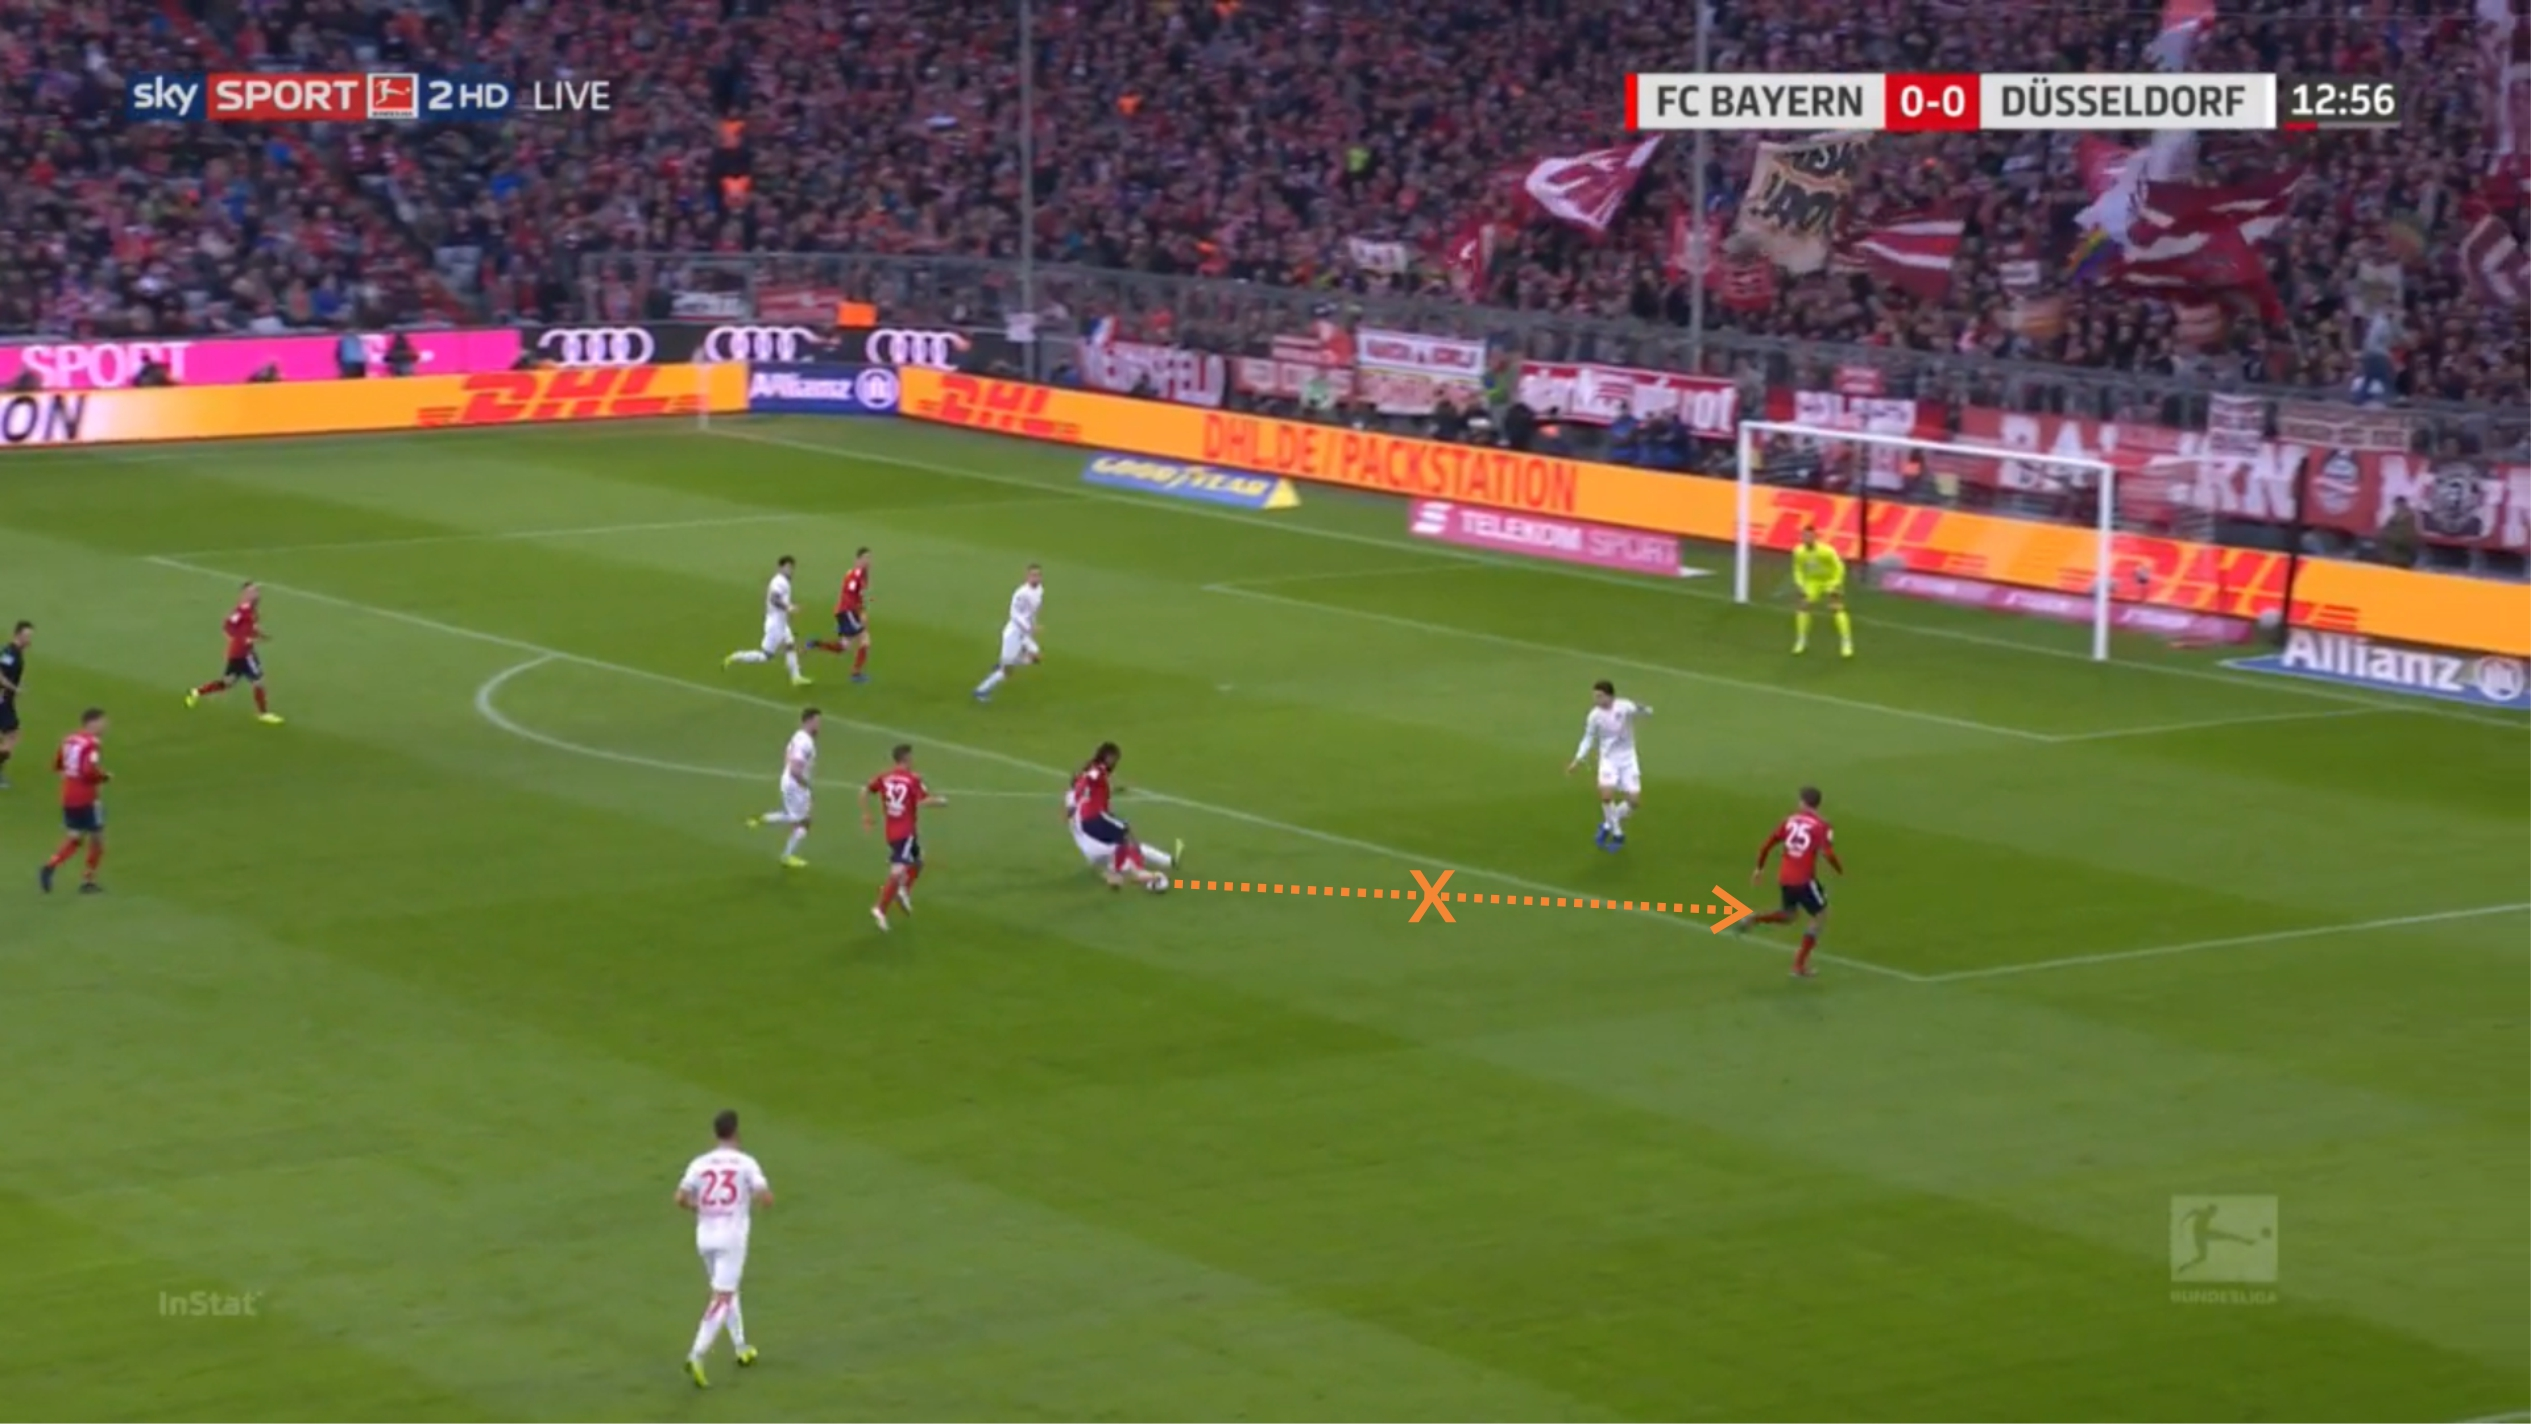 Renato Sanches 2019/20: His revival at Lille - scout report - tactical analysis tactics